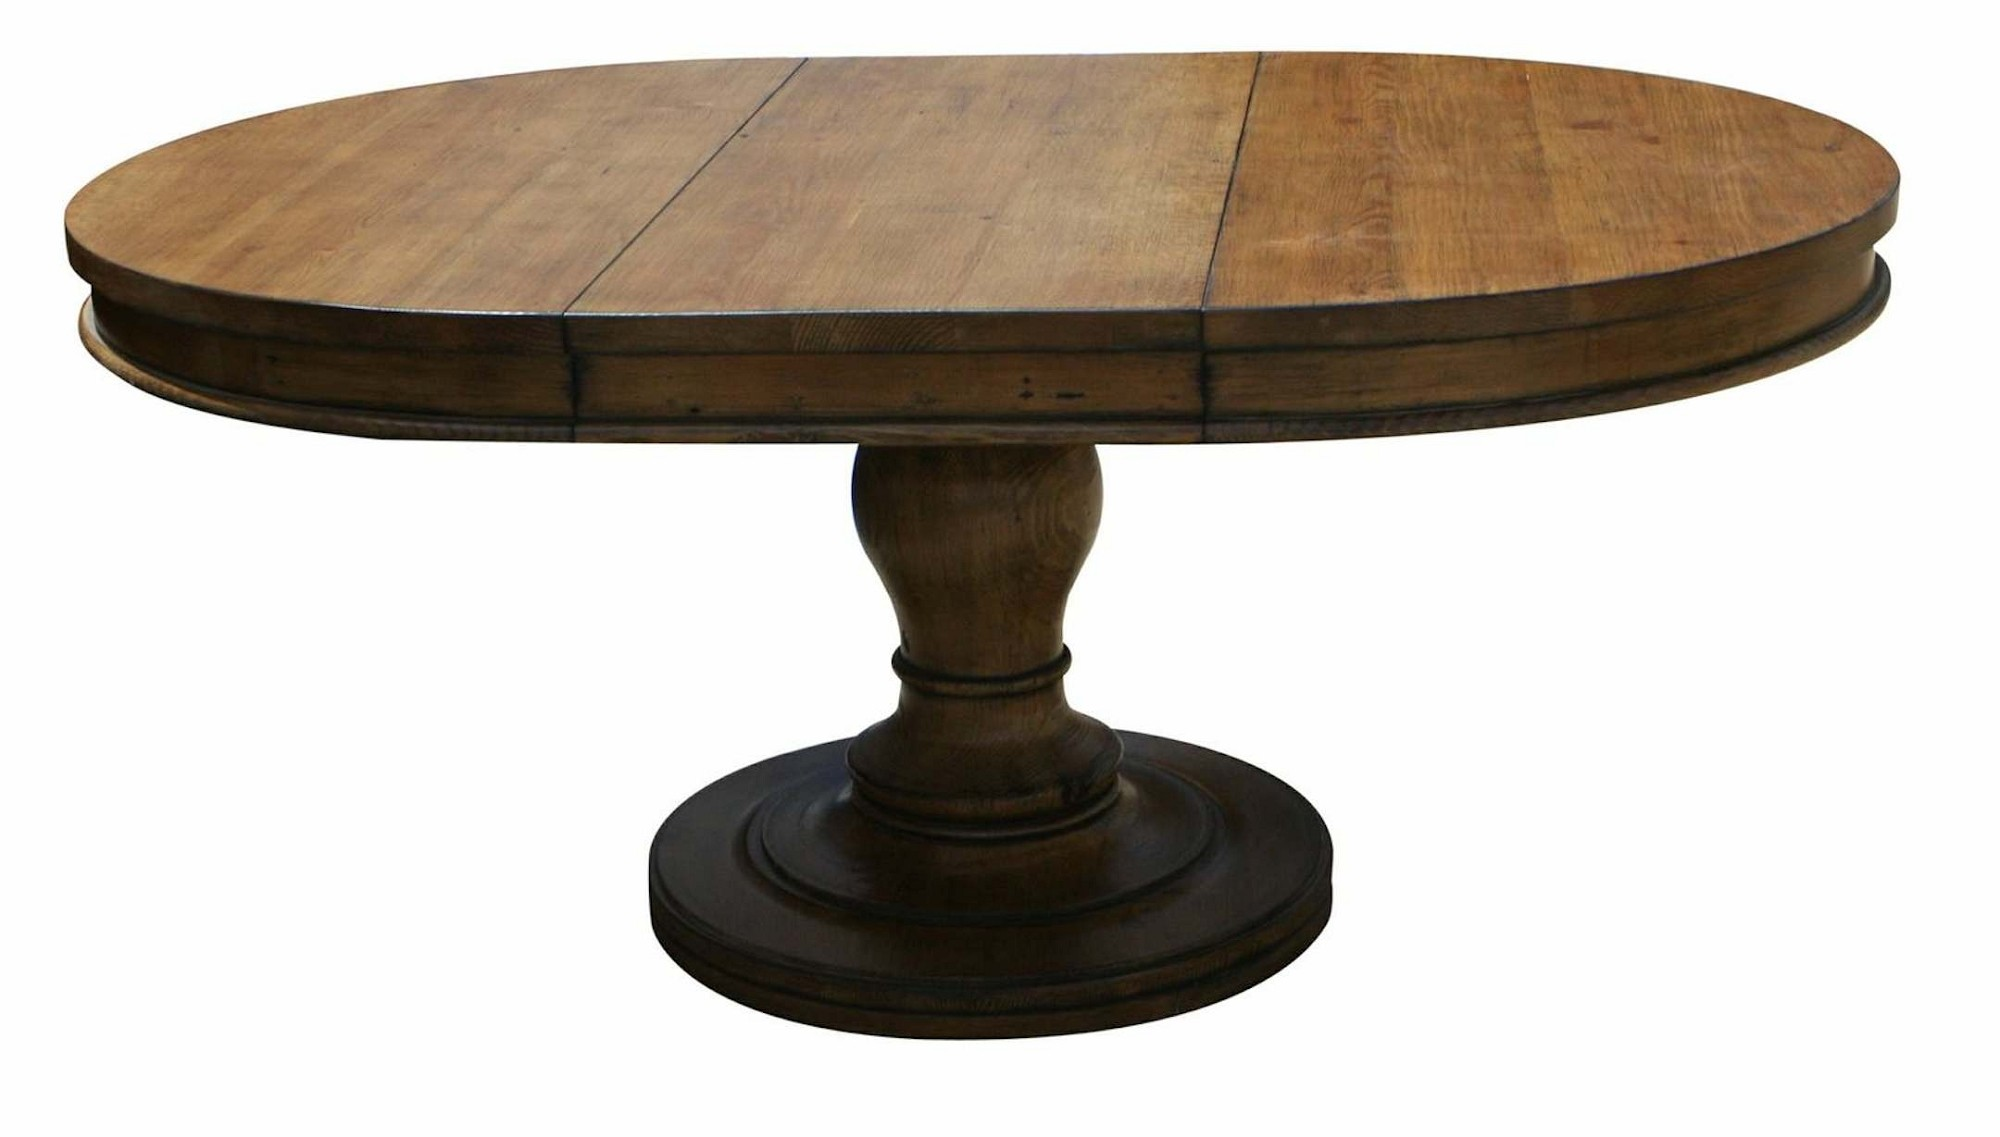 Fabulous pedestal dining table for dining room with round pedestal dining table